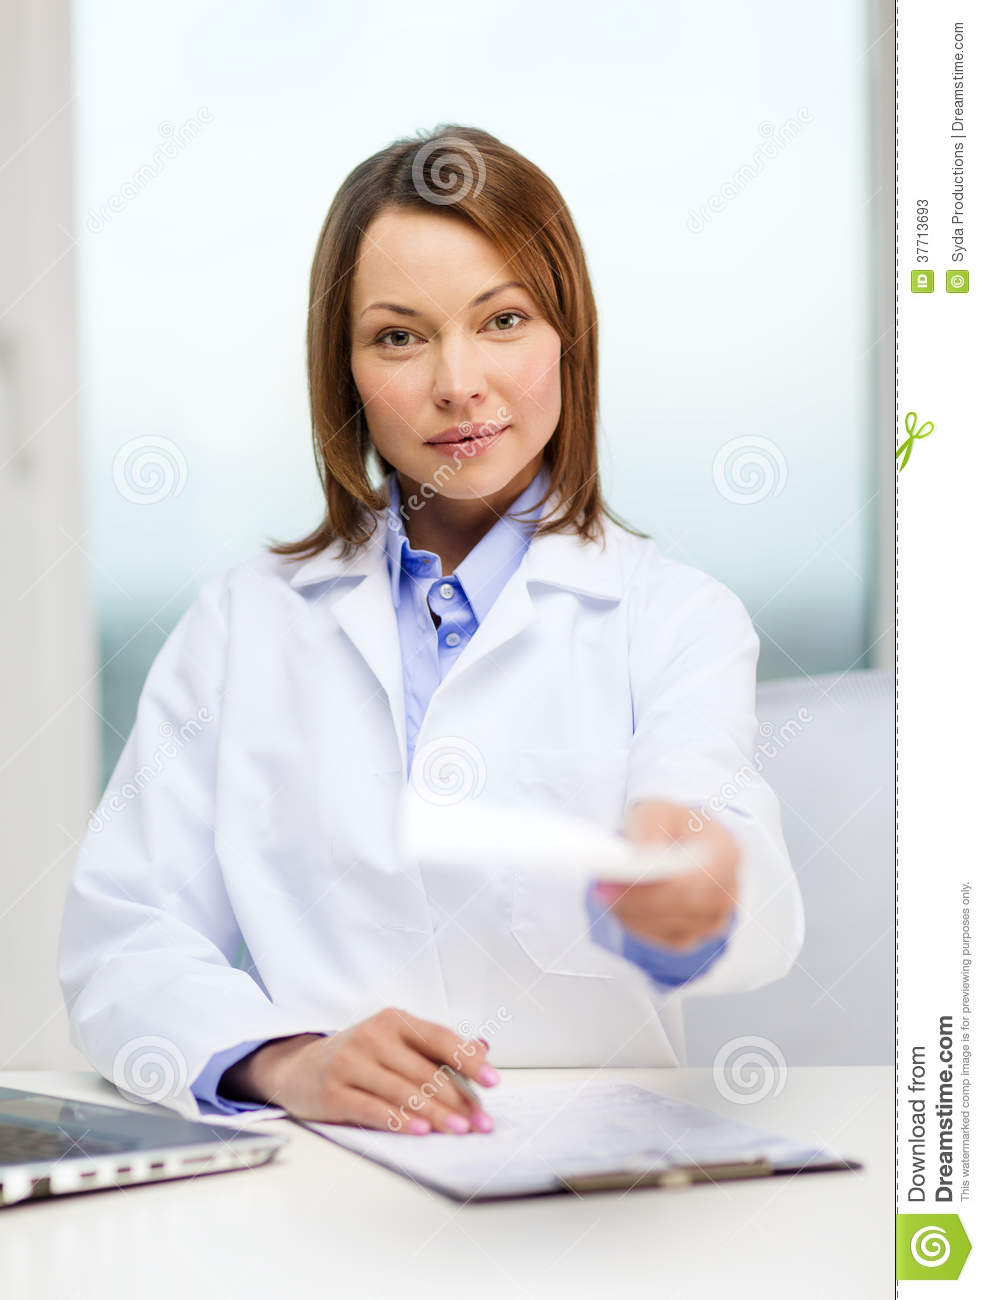 Busy Doctor With Laptop Computer And Clipboard Stock ...